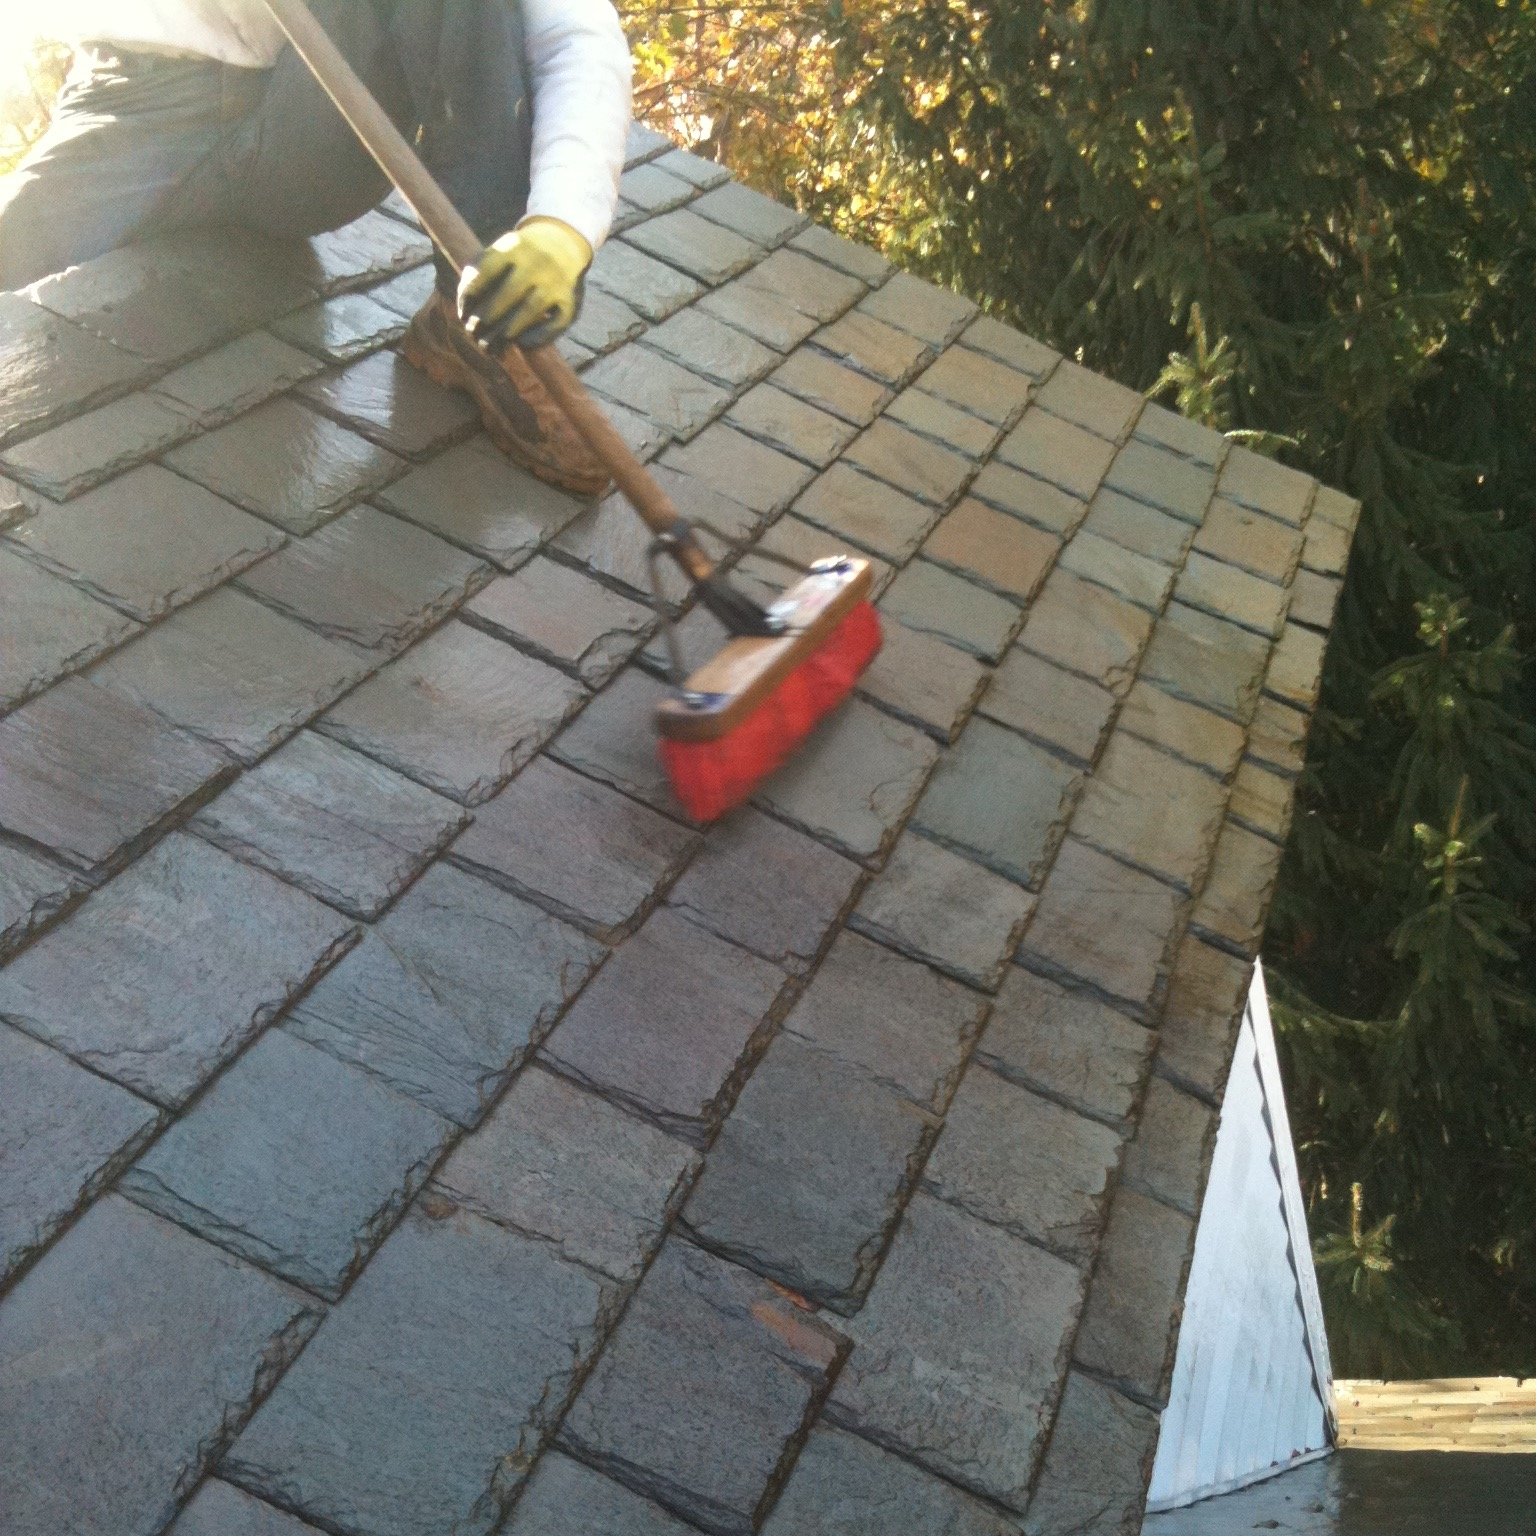 Architectural fungicides, commonly used for delicate gravestone / objects conservation, work very well on slate roofs, especially with a little brushing action. The added advantage is that we can assess broken or brittle pieces of slate that would otherwise remain hidden under layers of dark grime.